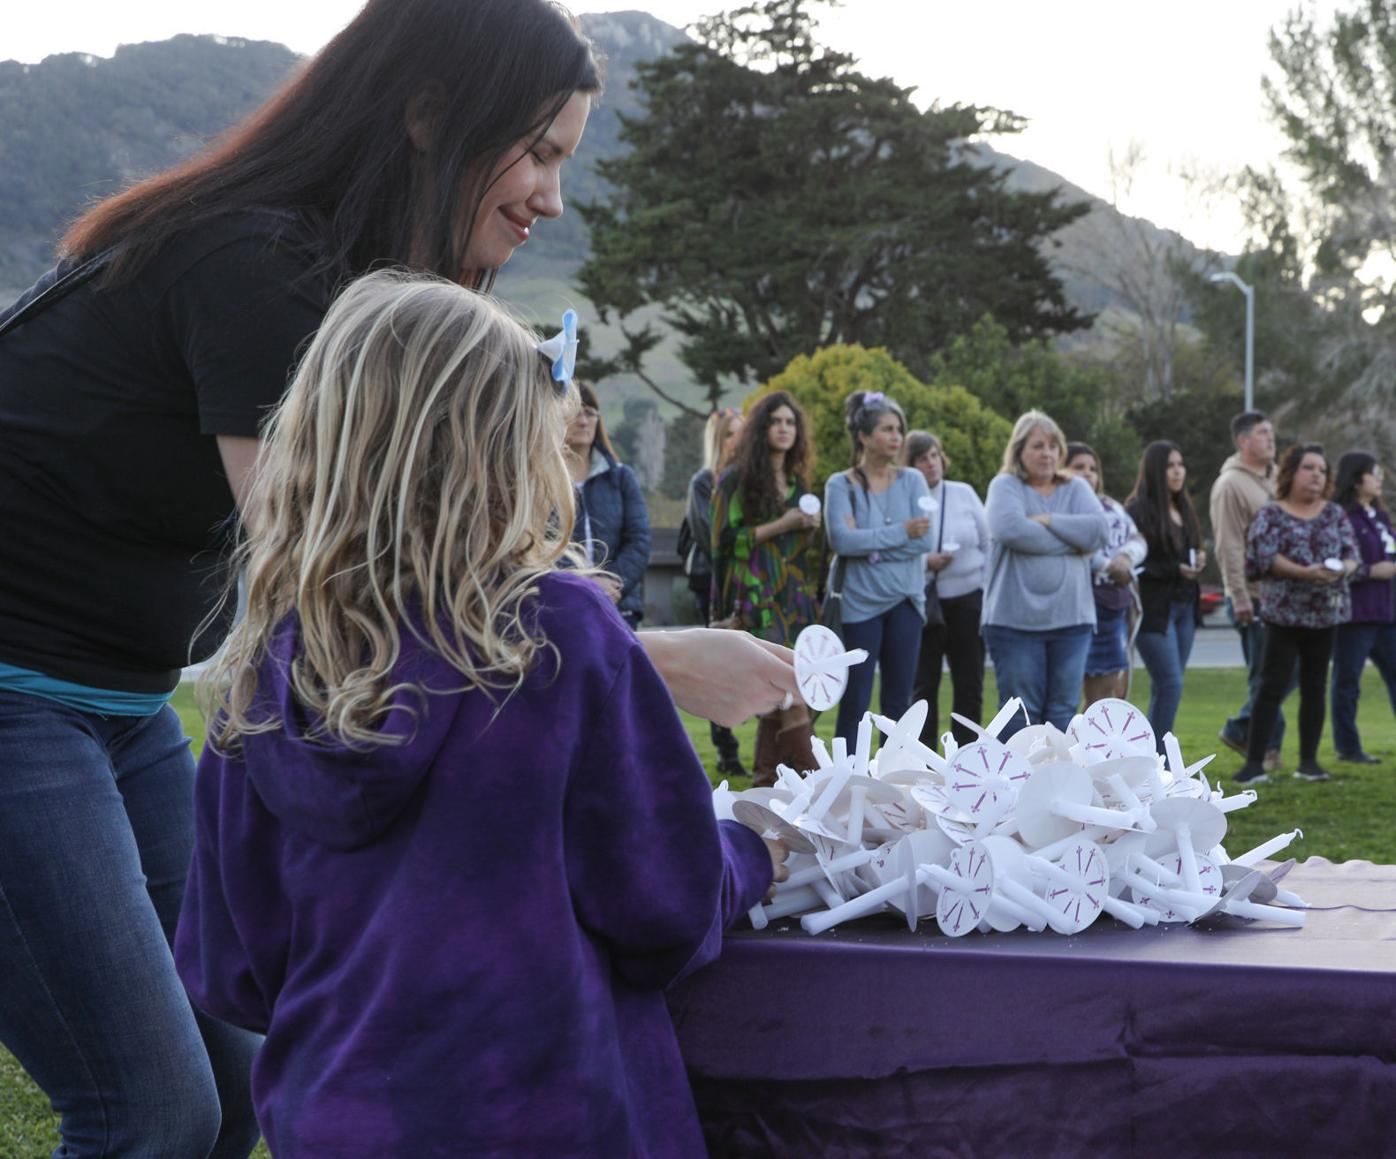 'Keep her memory alive': Organizer encourages community to spread awareness of Kristin Smart during vigil in SLO